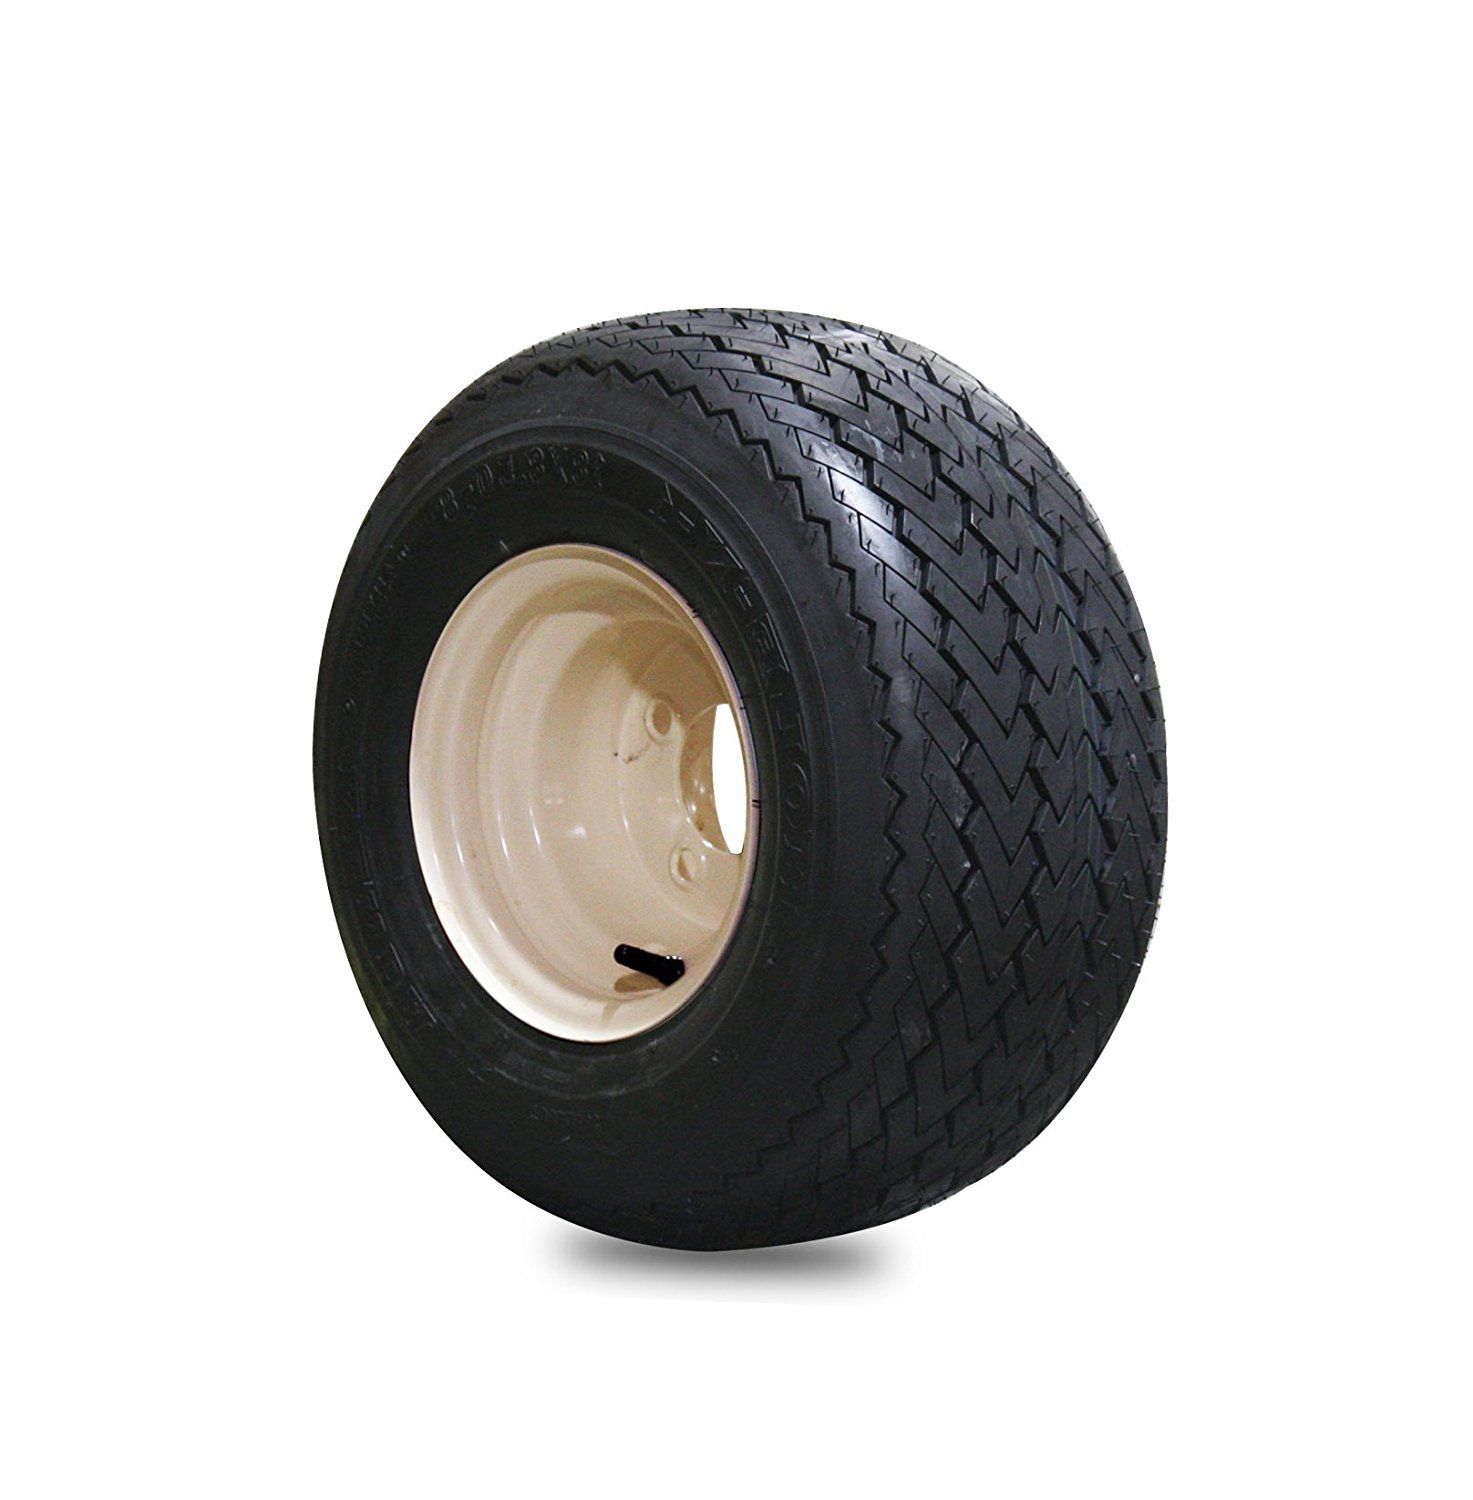 EZGO 18x8.50-8 Hole-N-One Kenda Tire with Tan Wheel Assembly [並行輸入品] B0784H4SDK